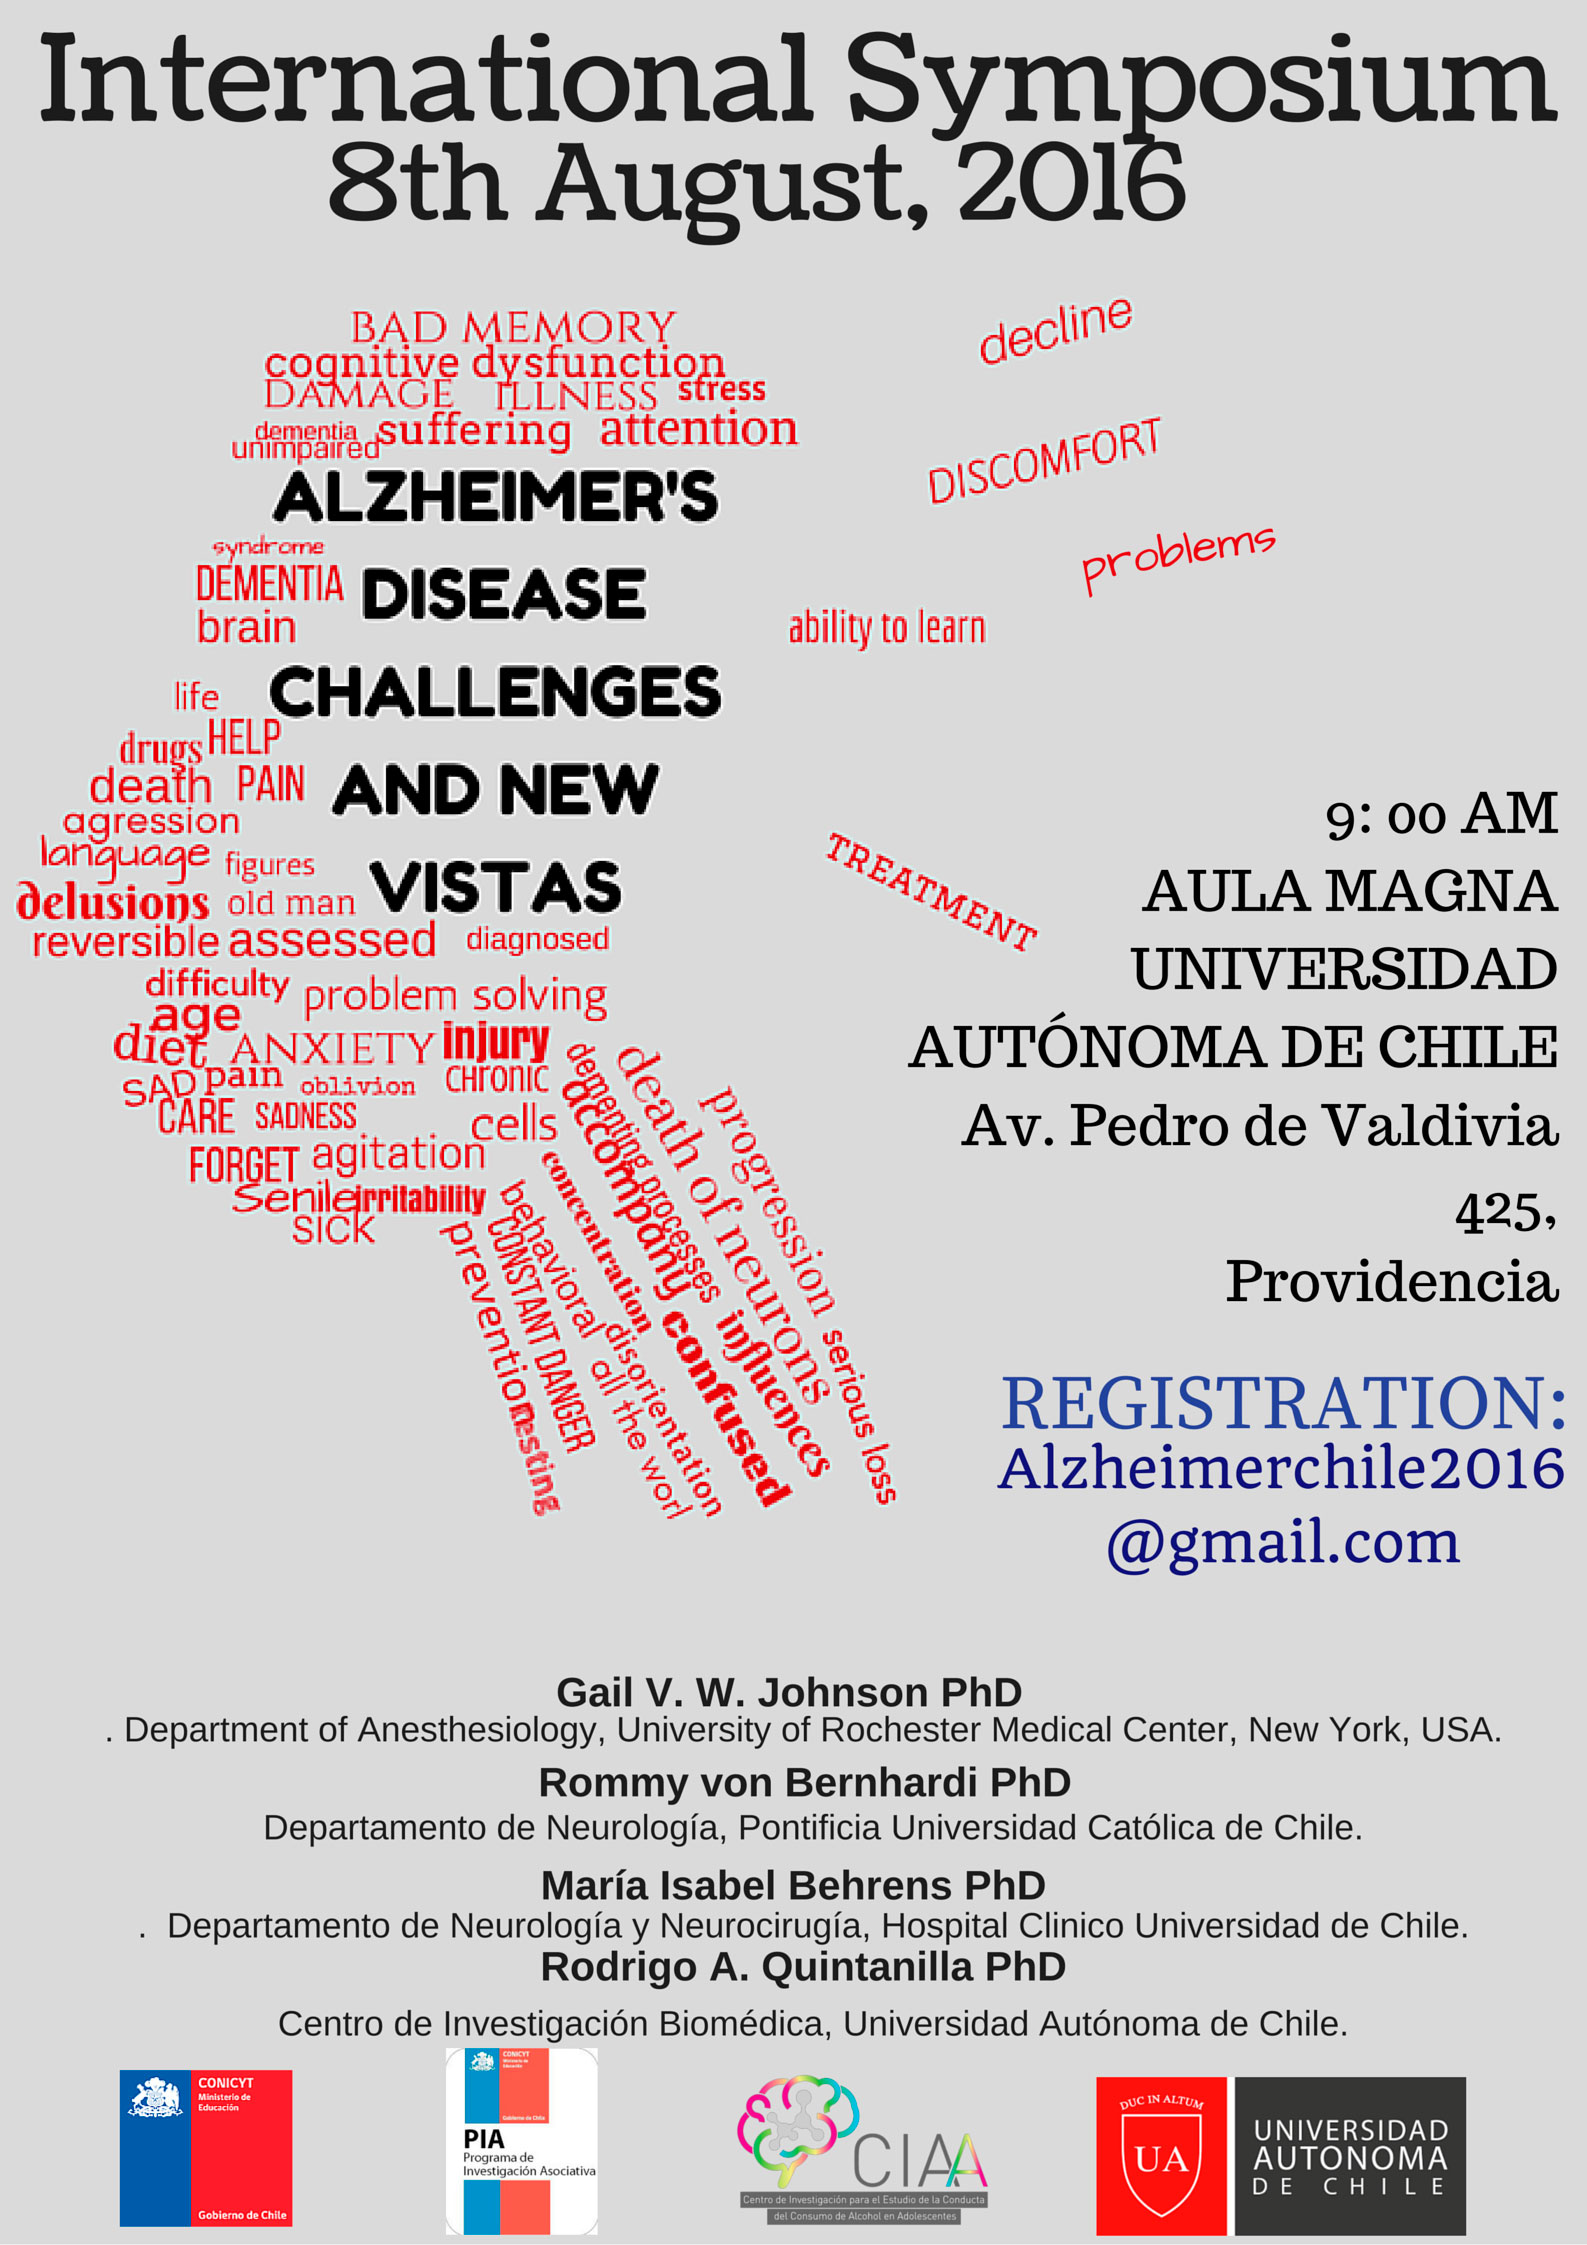 International Symposium AD Poster 2016